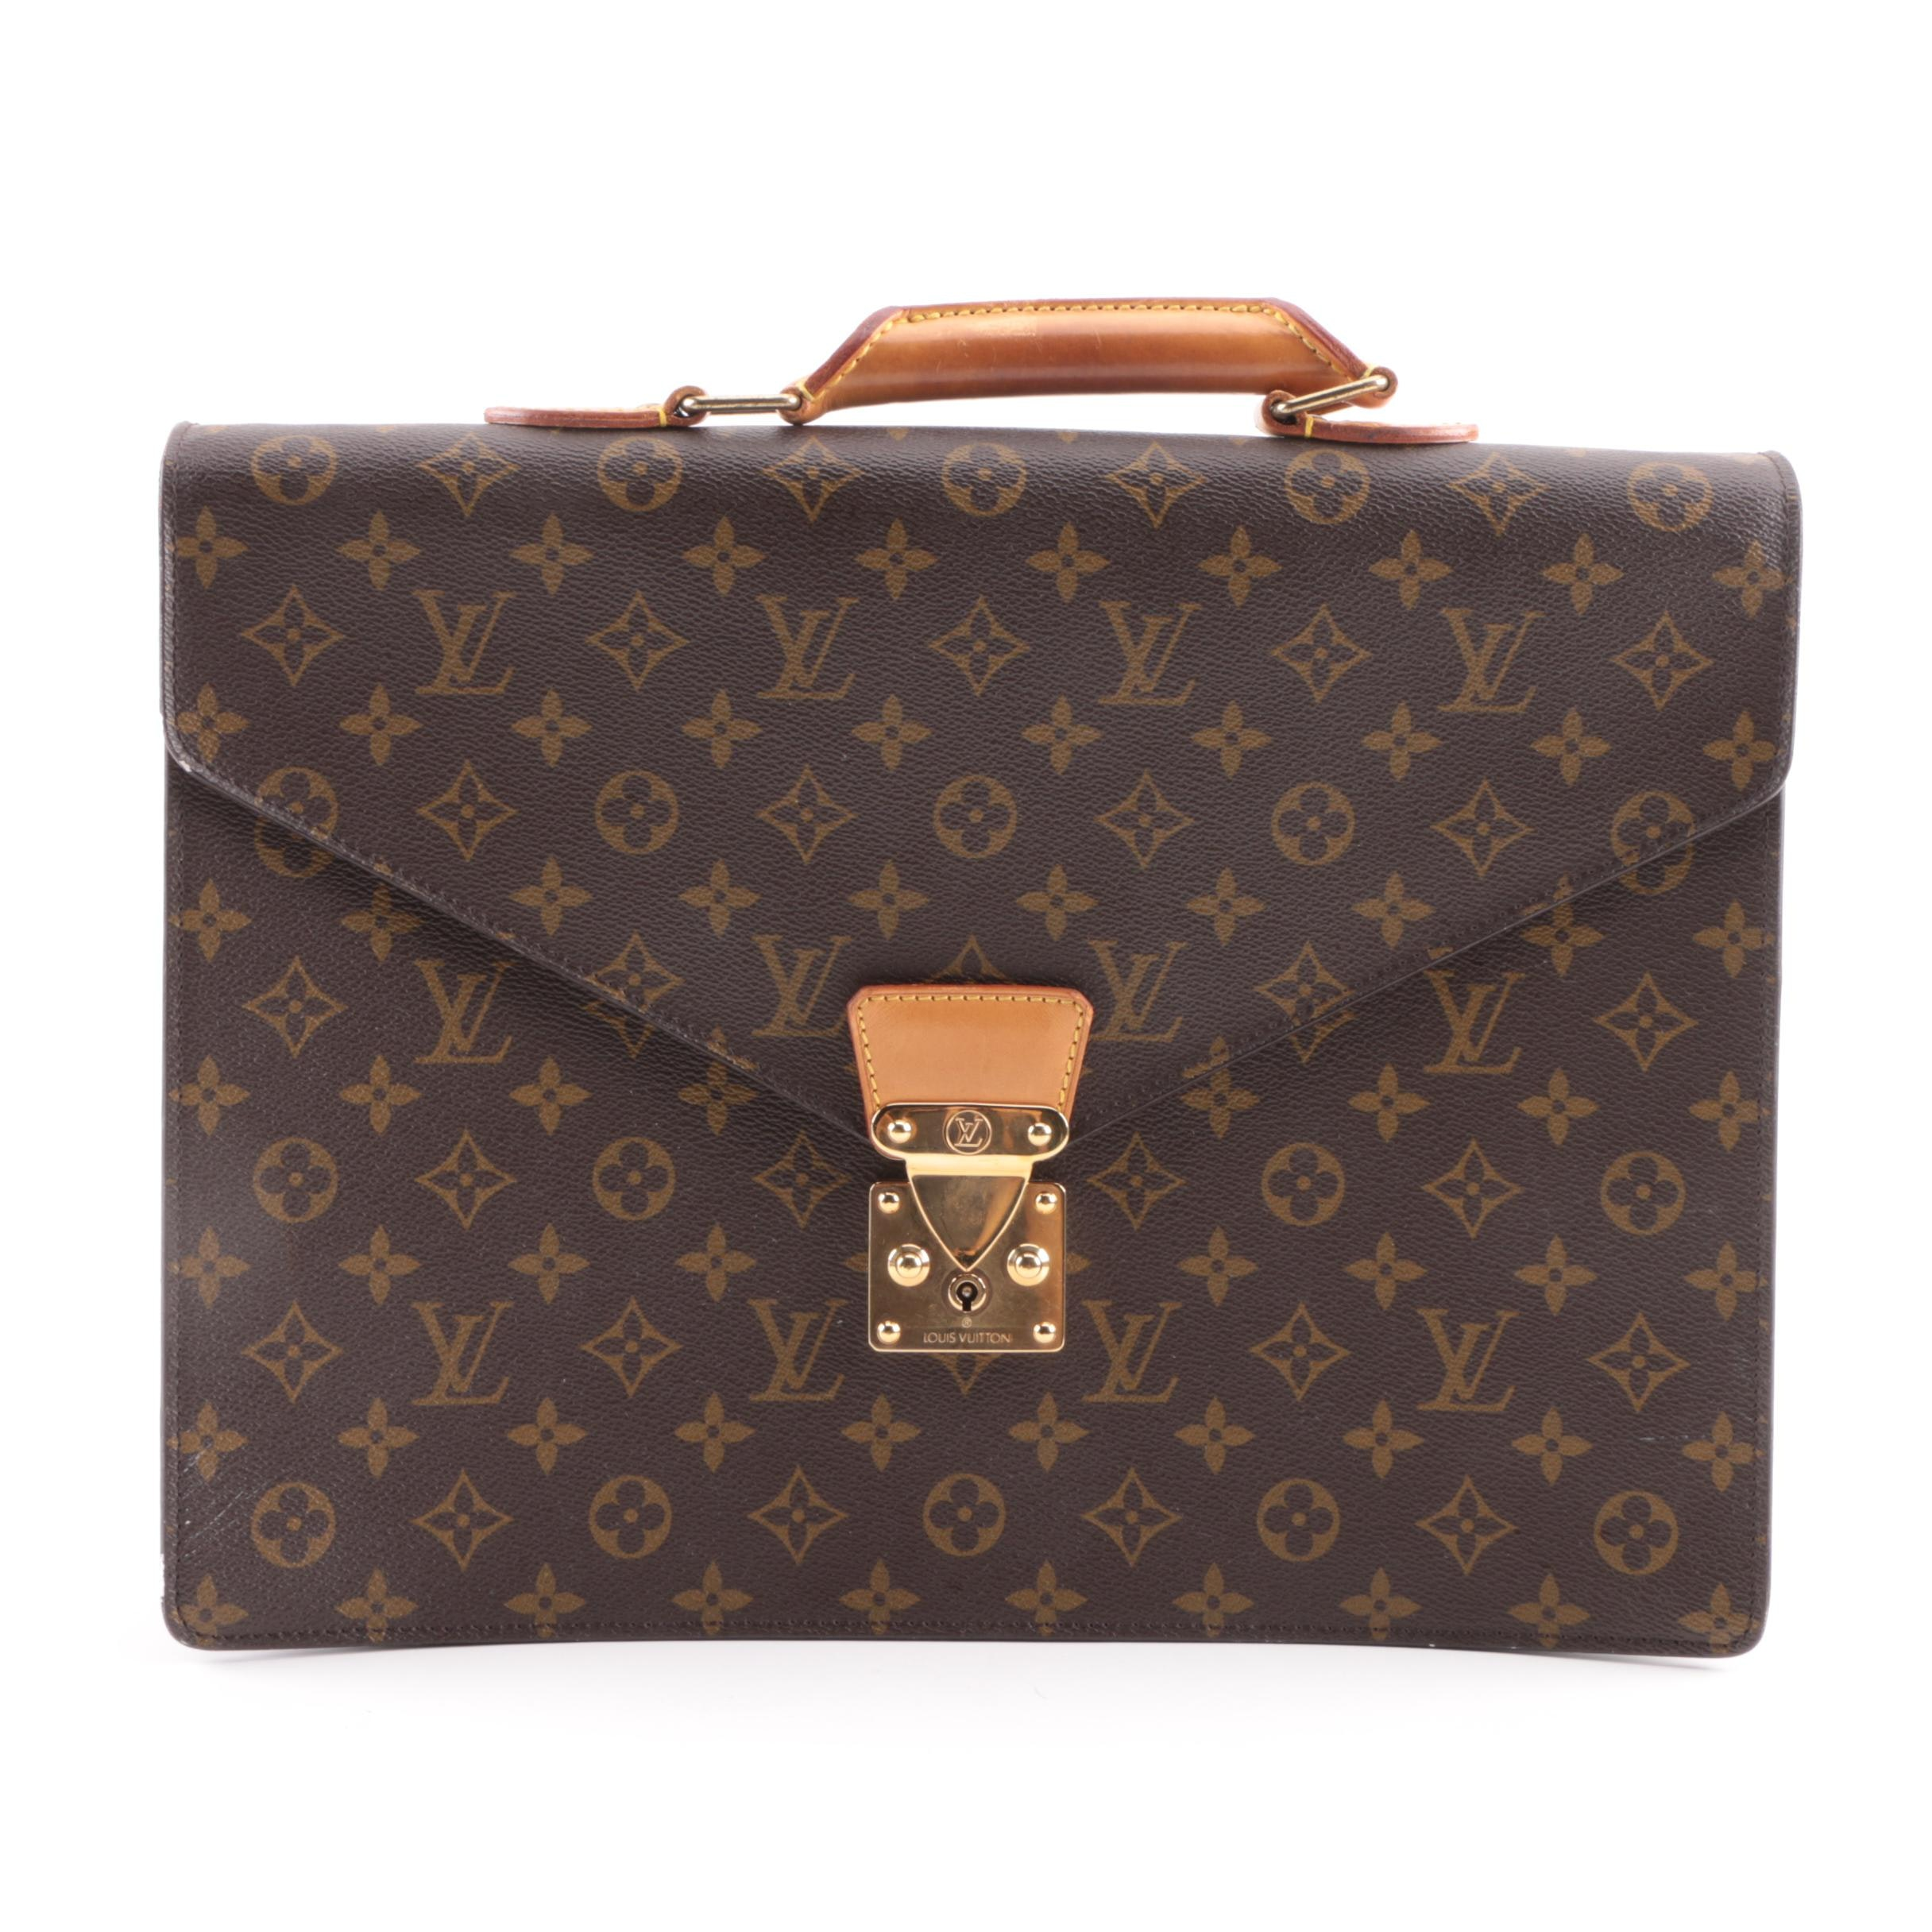 1992 Louis Vuitton of Paris Monogrammed Canvas Briefcase